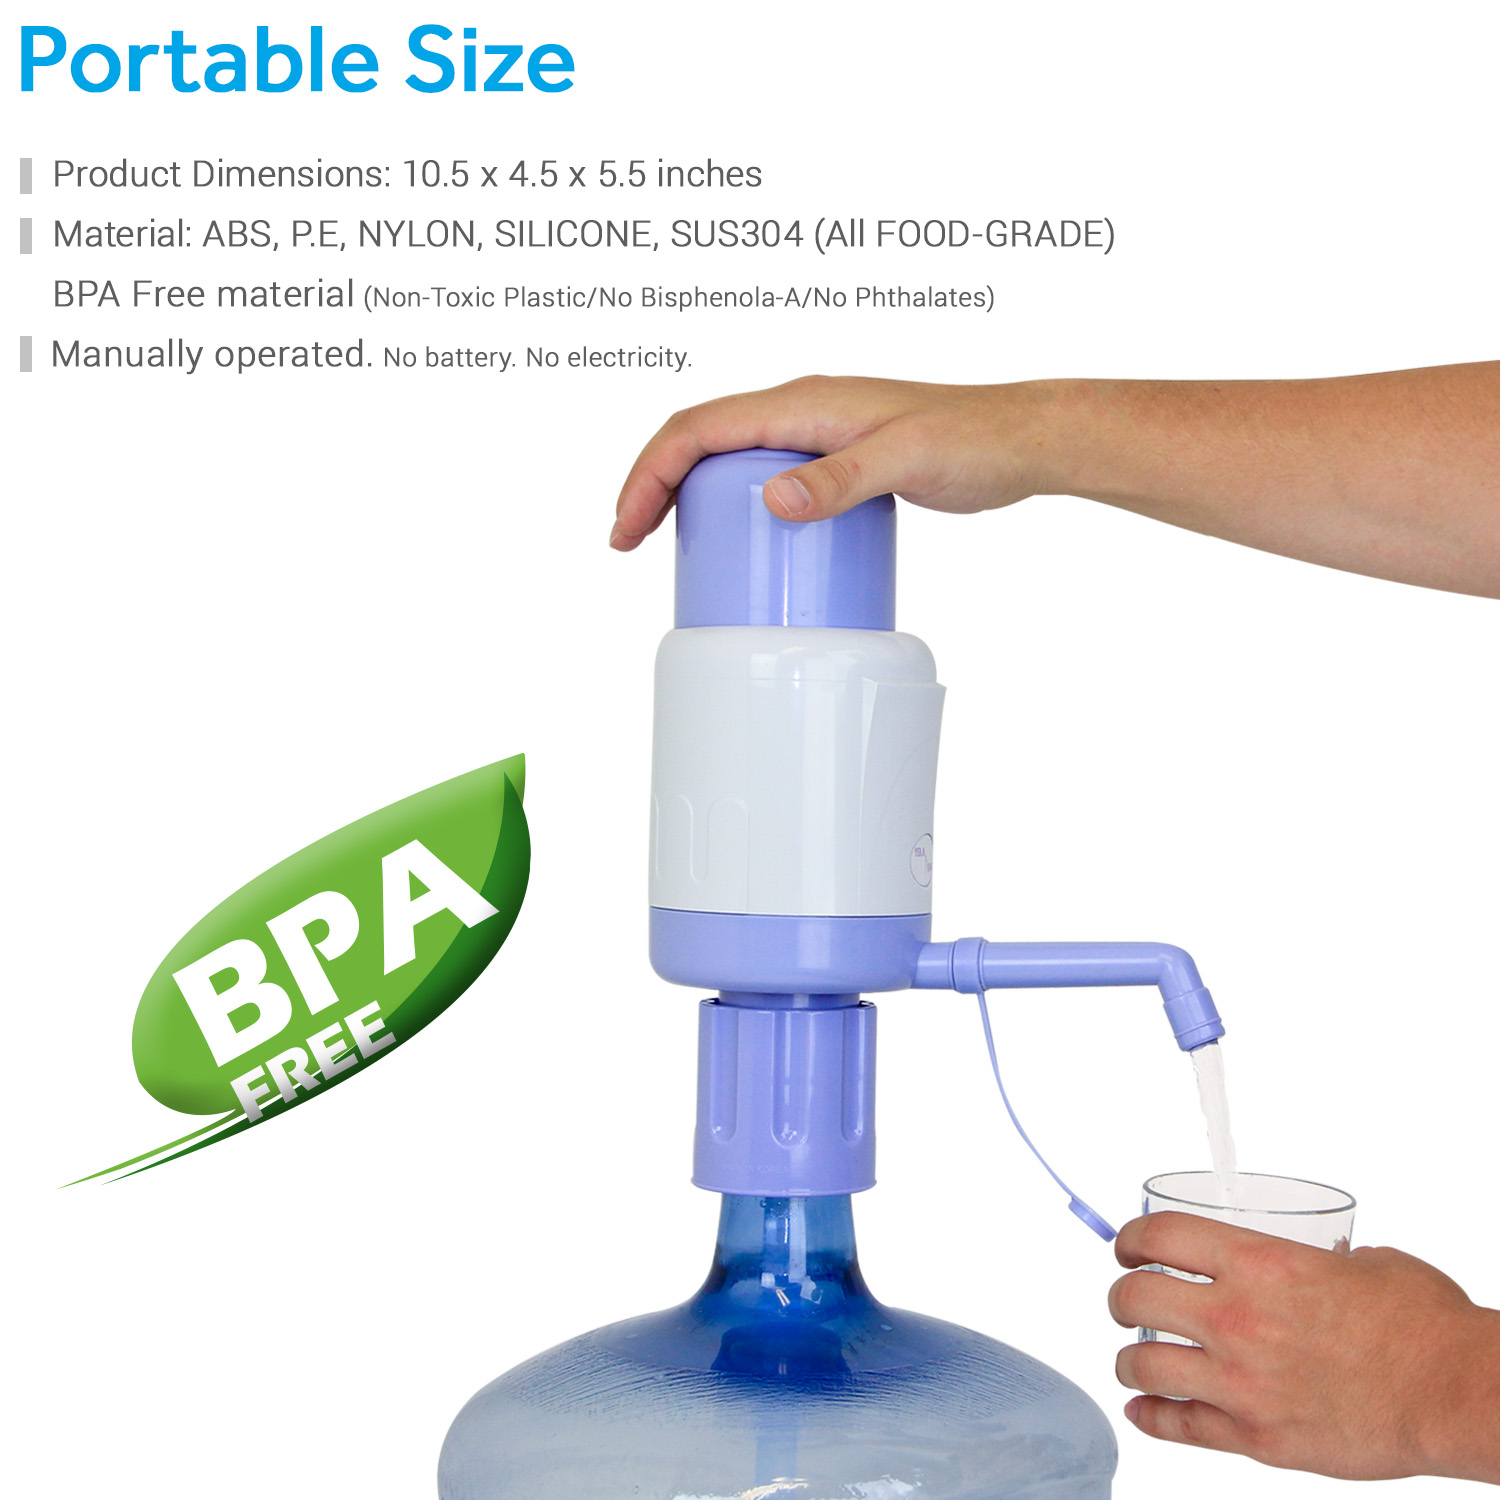 TERAPUMP - TRPMW200 Manual Drinking Water Pump, Fits Any Bottle (Except Glass Bottles) BPA-FREE